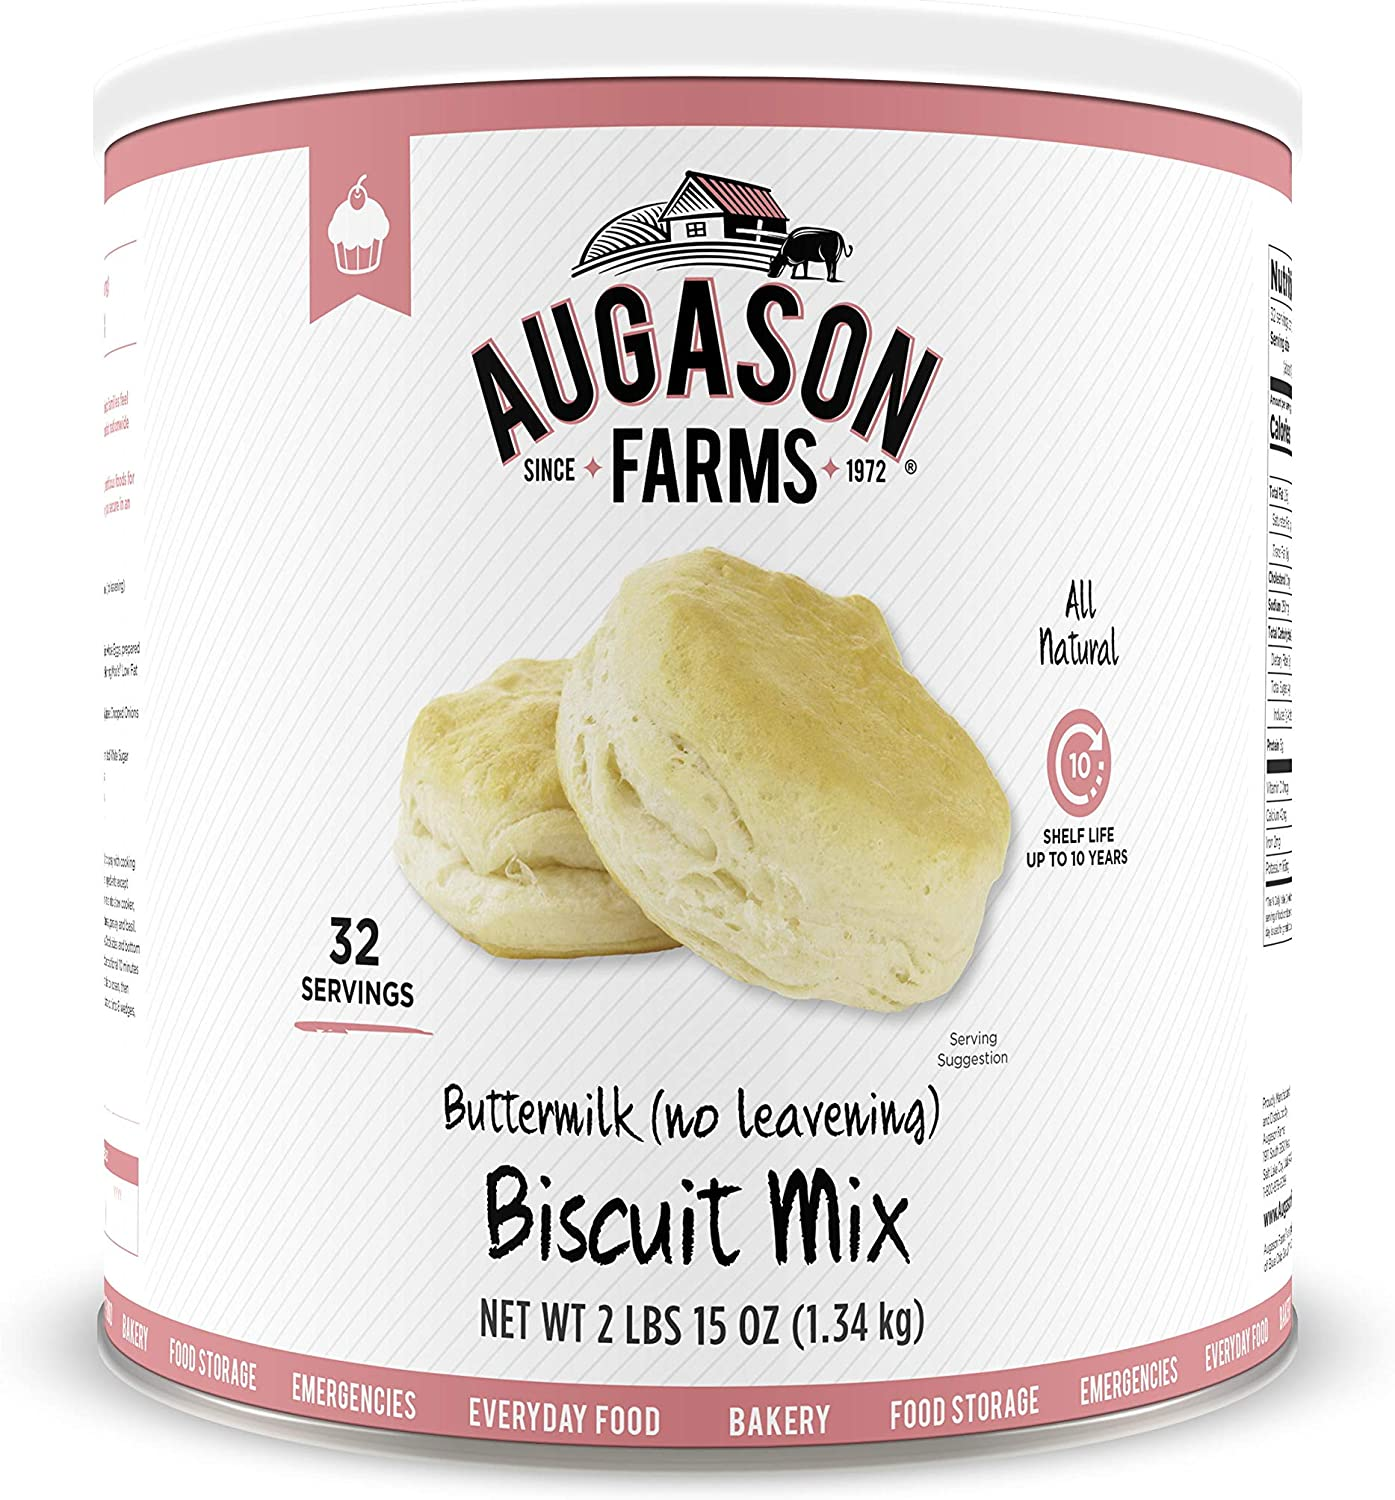 Augason Farms Buttermilk (No Leavening) Biscuit Mix 2 lbs 15 oz No. 10 Can